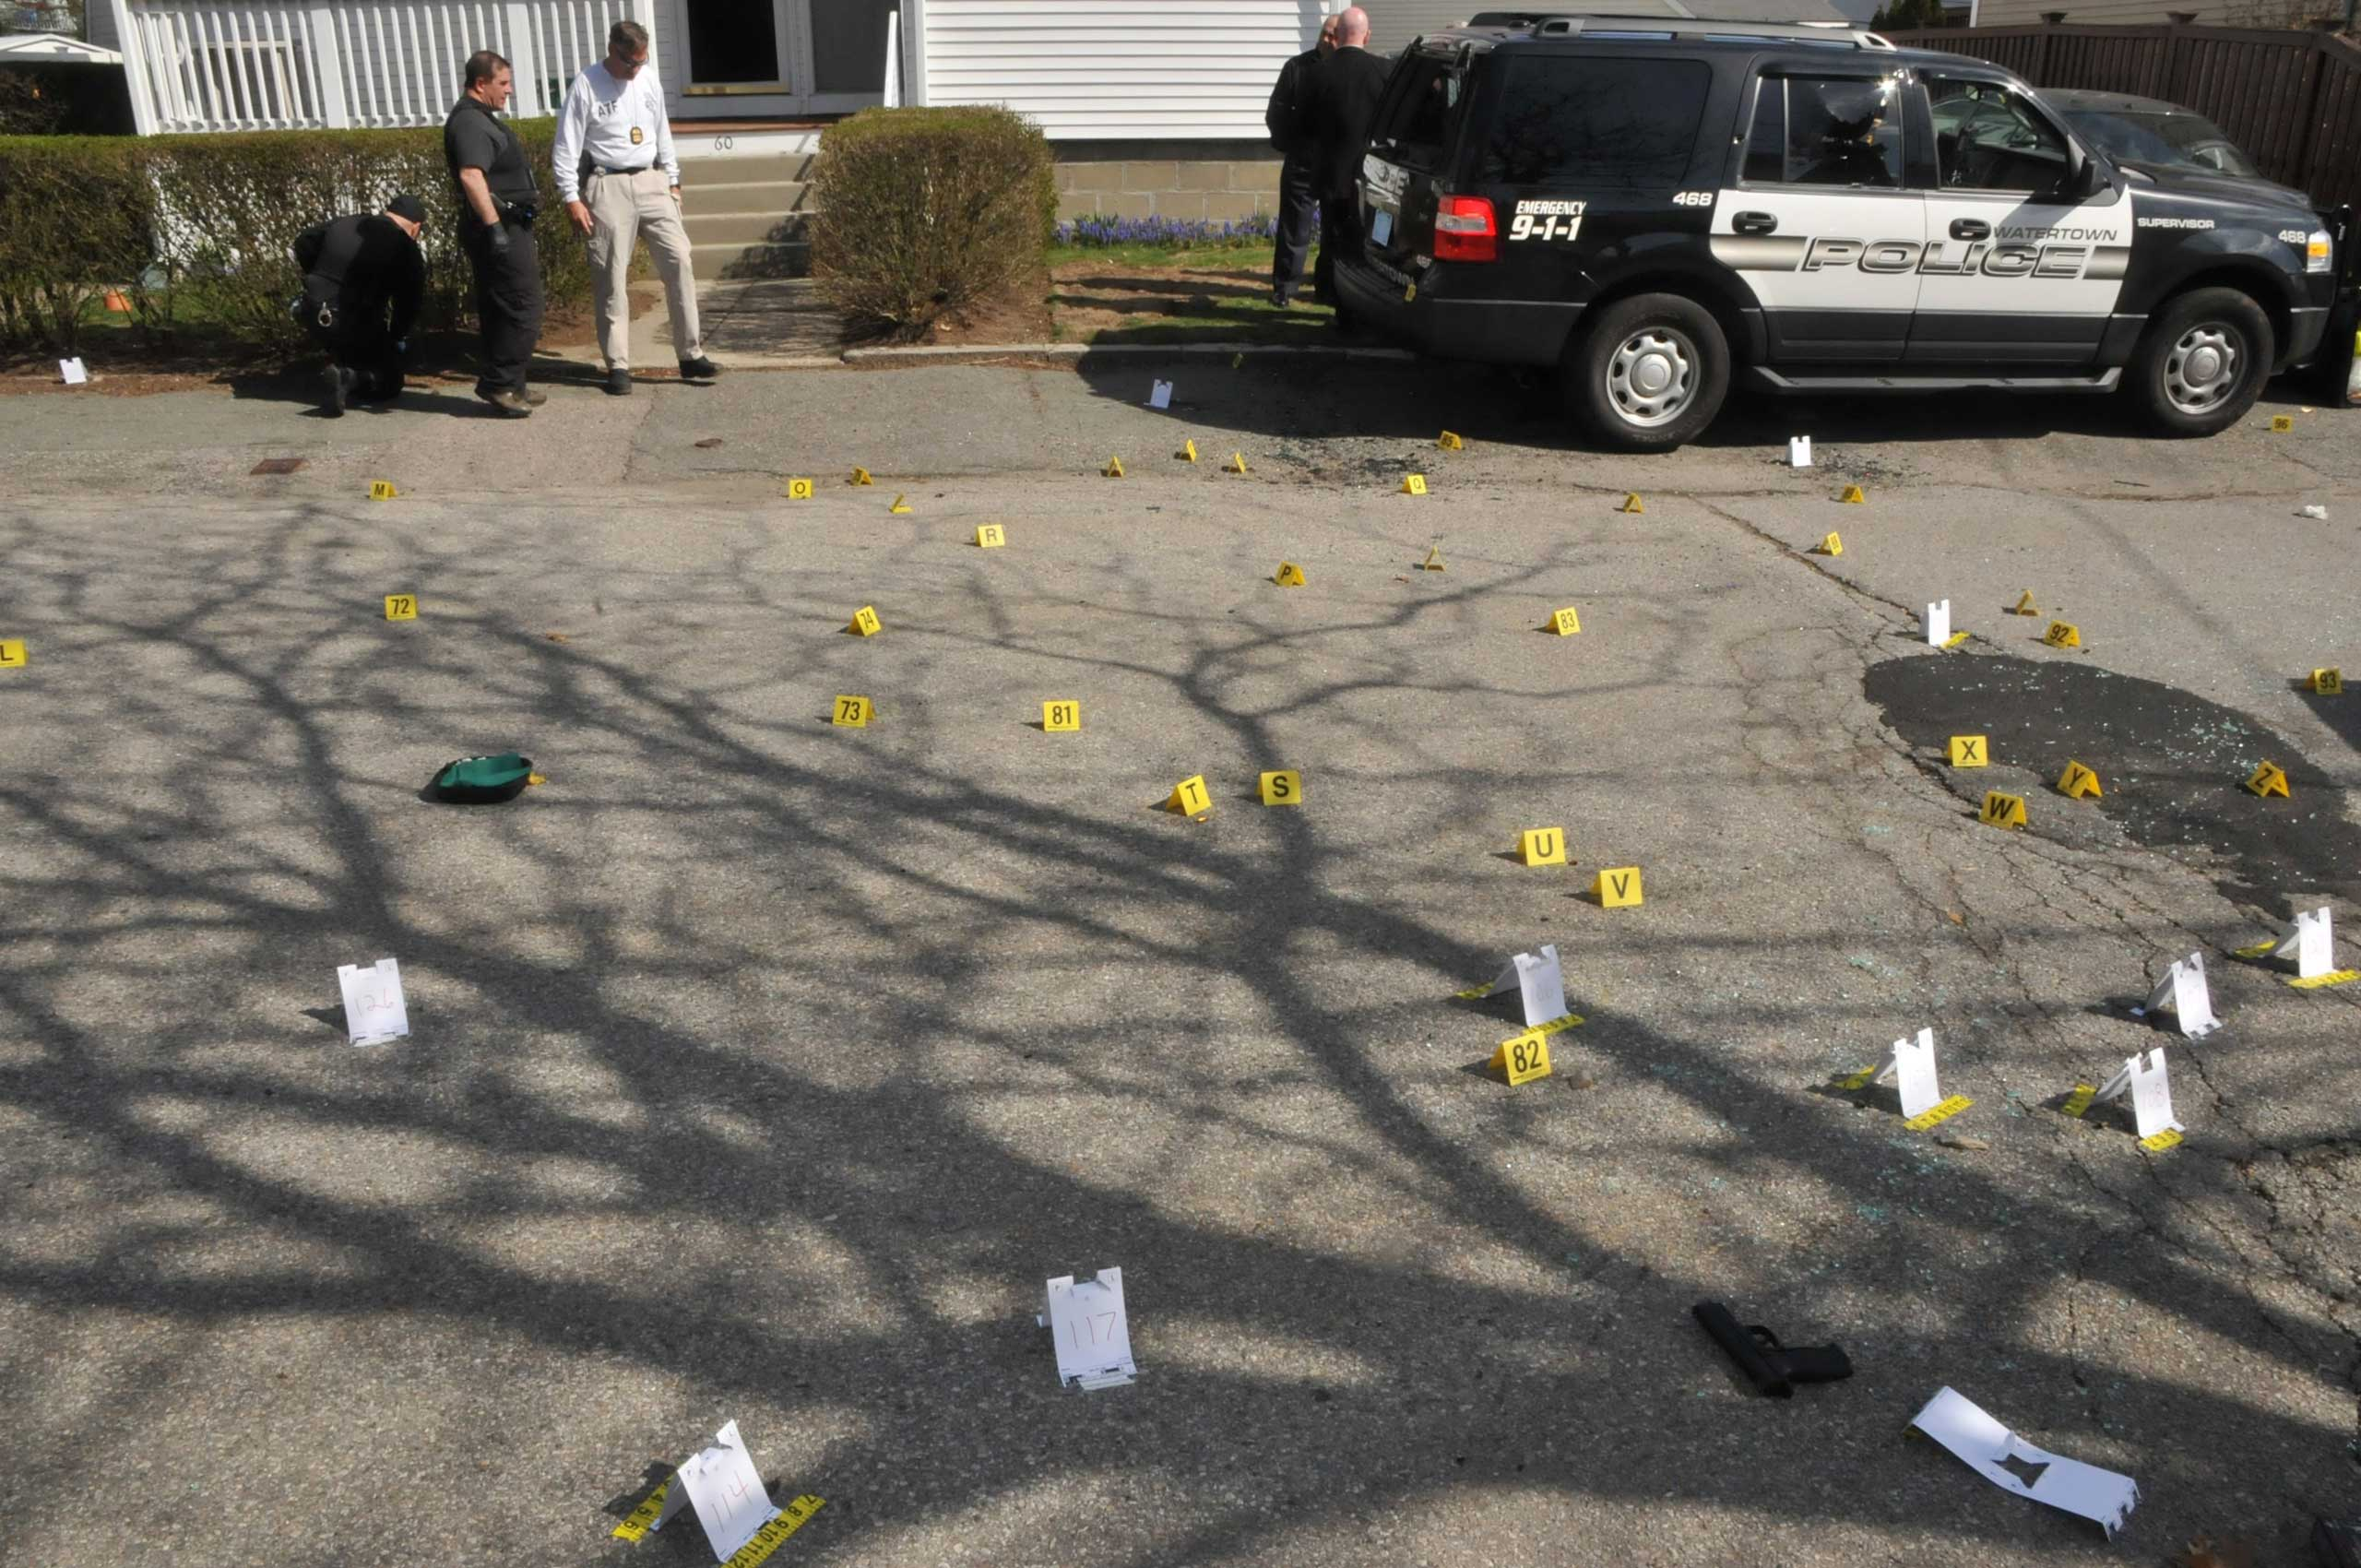 Evidence markers are seen on a street where Tamerlan and Dzhokhar Tsarnaev engaged in a gunfight with police.